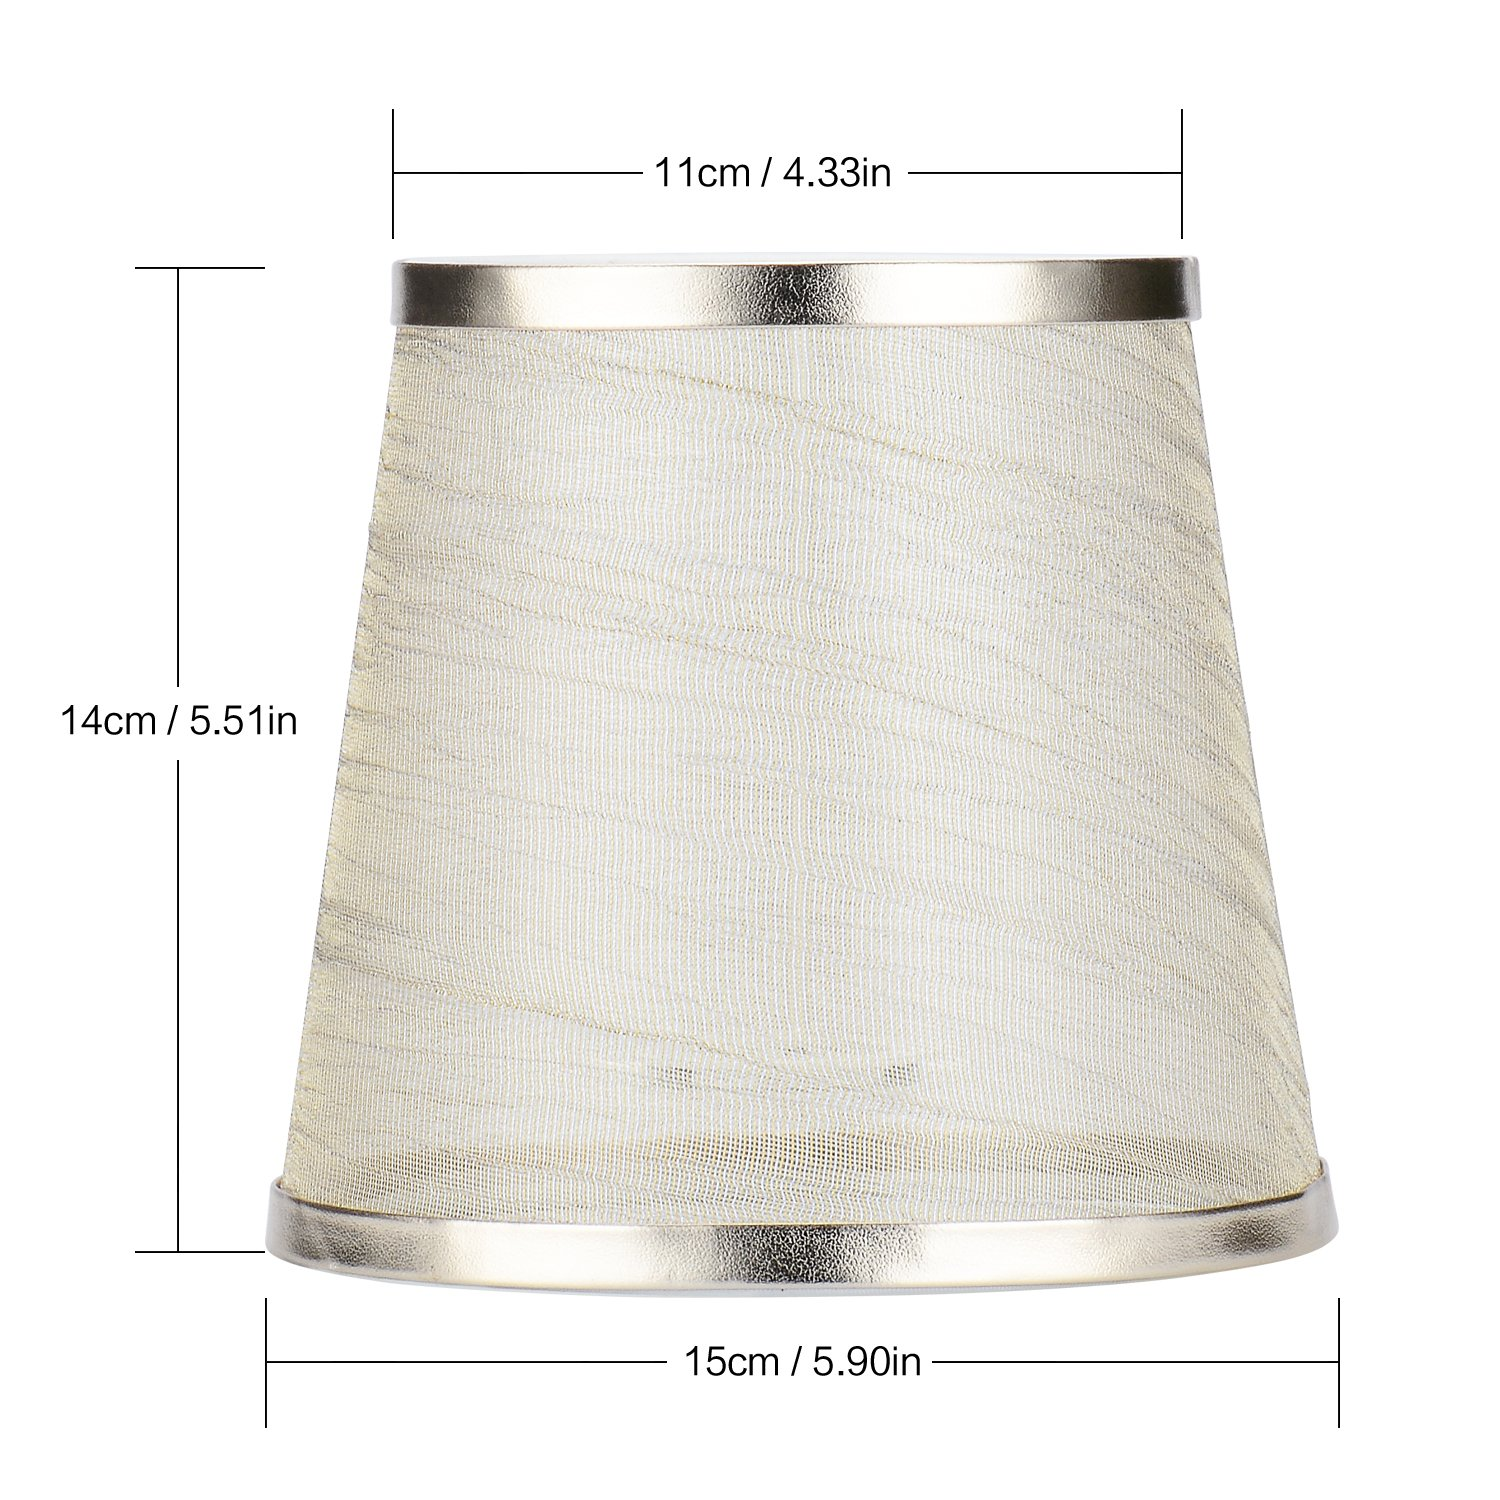 Cleeacc Creative Transparent Lamp Shades for Table Lamps Small Clip on (4x6x5.5in) Chandelier Handmade Modern E14 Screw Lampshade Classic Simple Style Crystal Candle Glass Lamp Shade Cloth Design 1 by Cleeacc (Image #3)